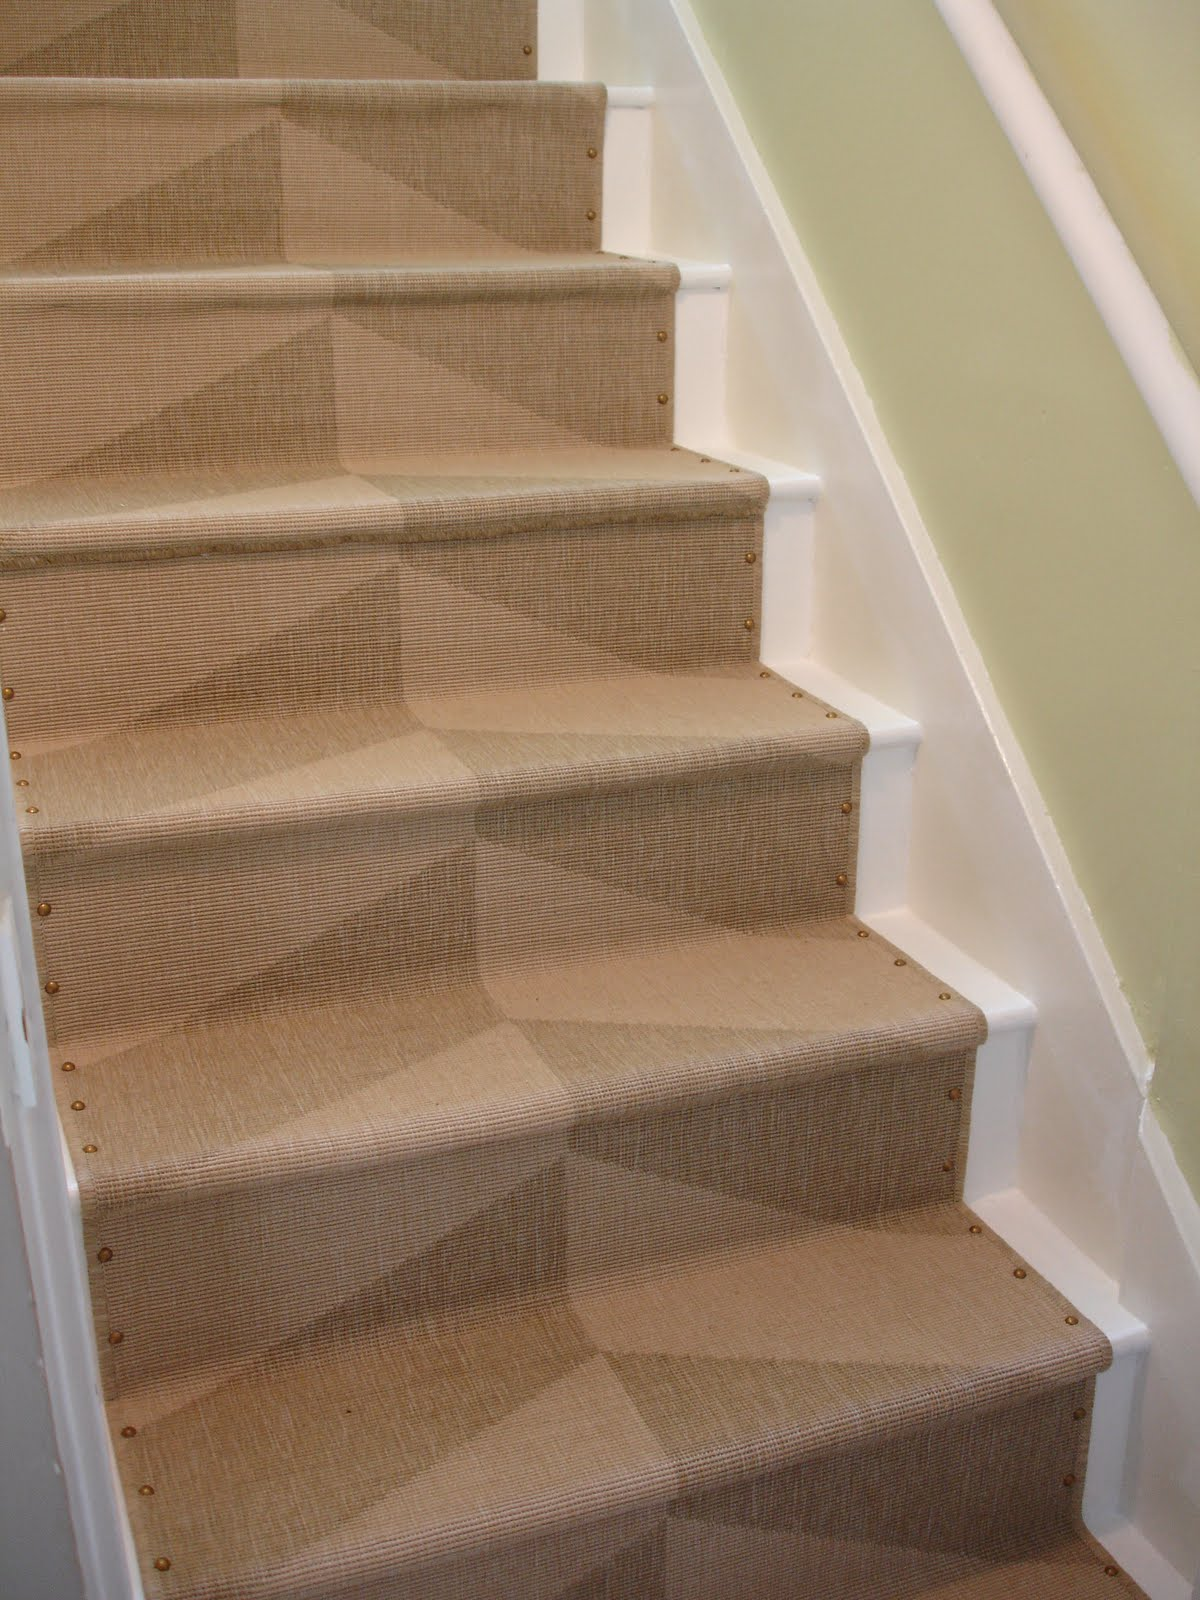 Loft Cottage Diy Nailhead Stair Runner   Carpet Up Middle Of Stairs